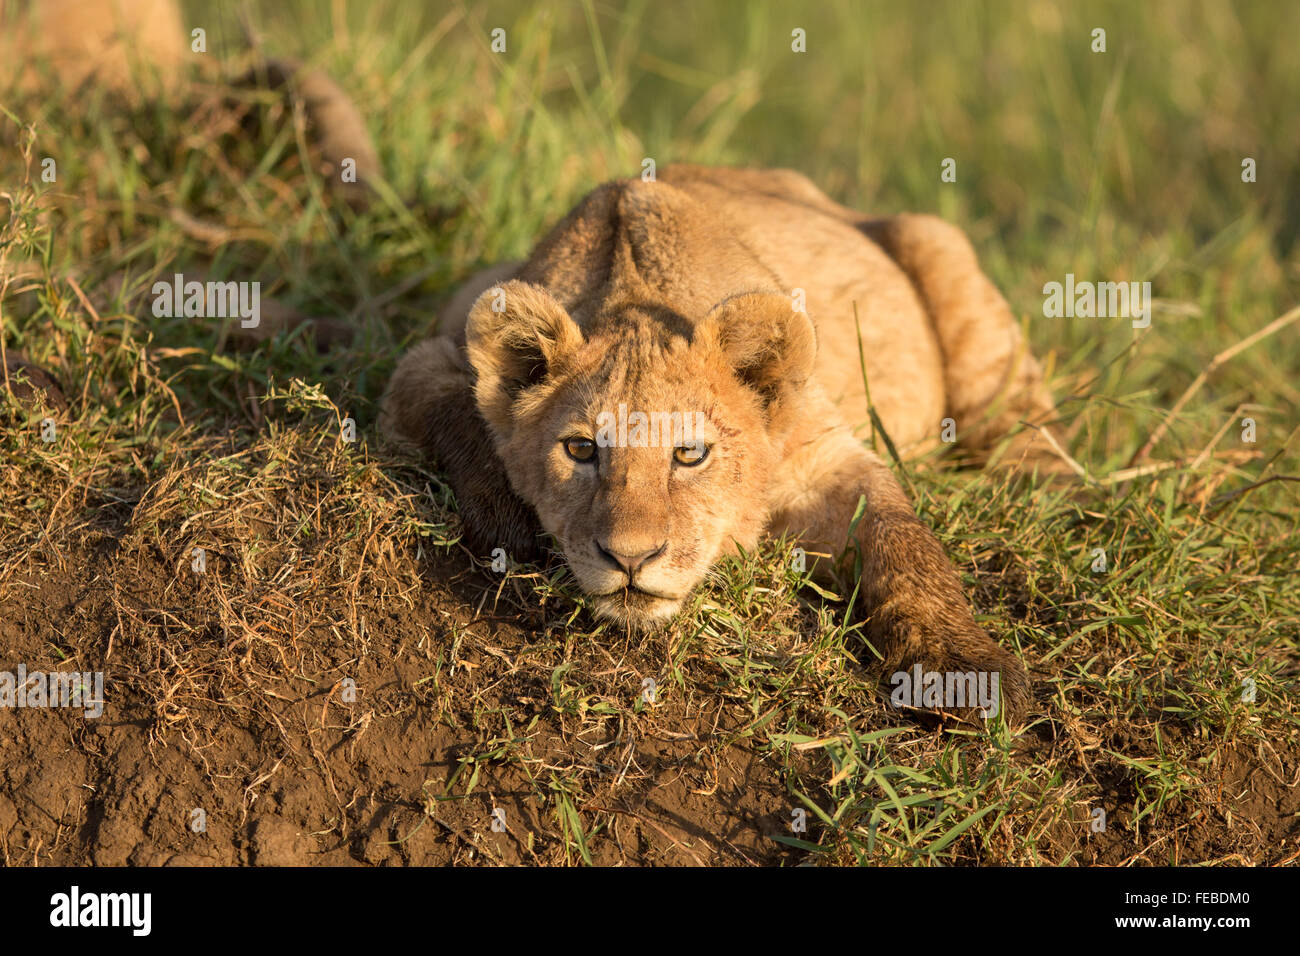 African Lion cub resting in the Ngorongoro Crater Tanzania - Stock Image